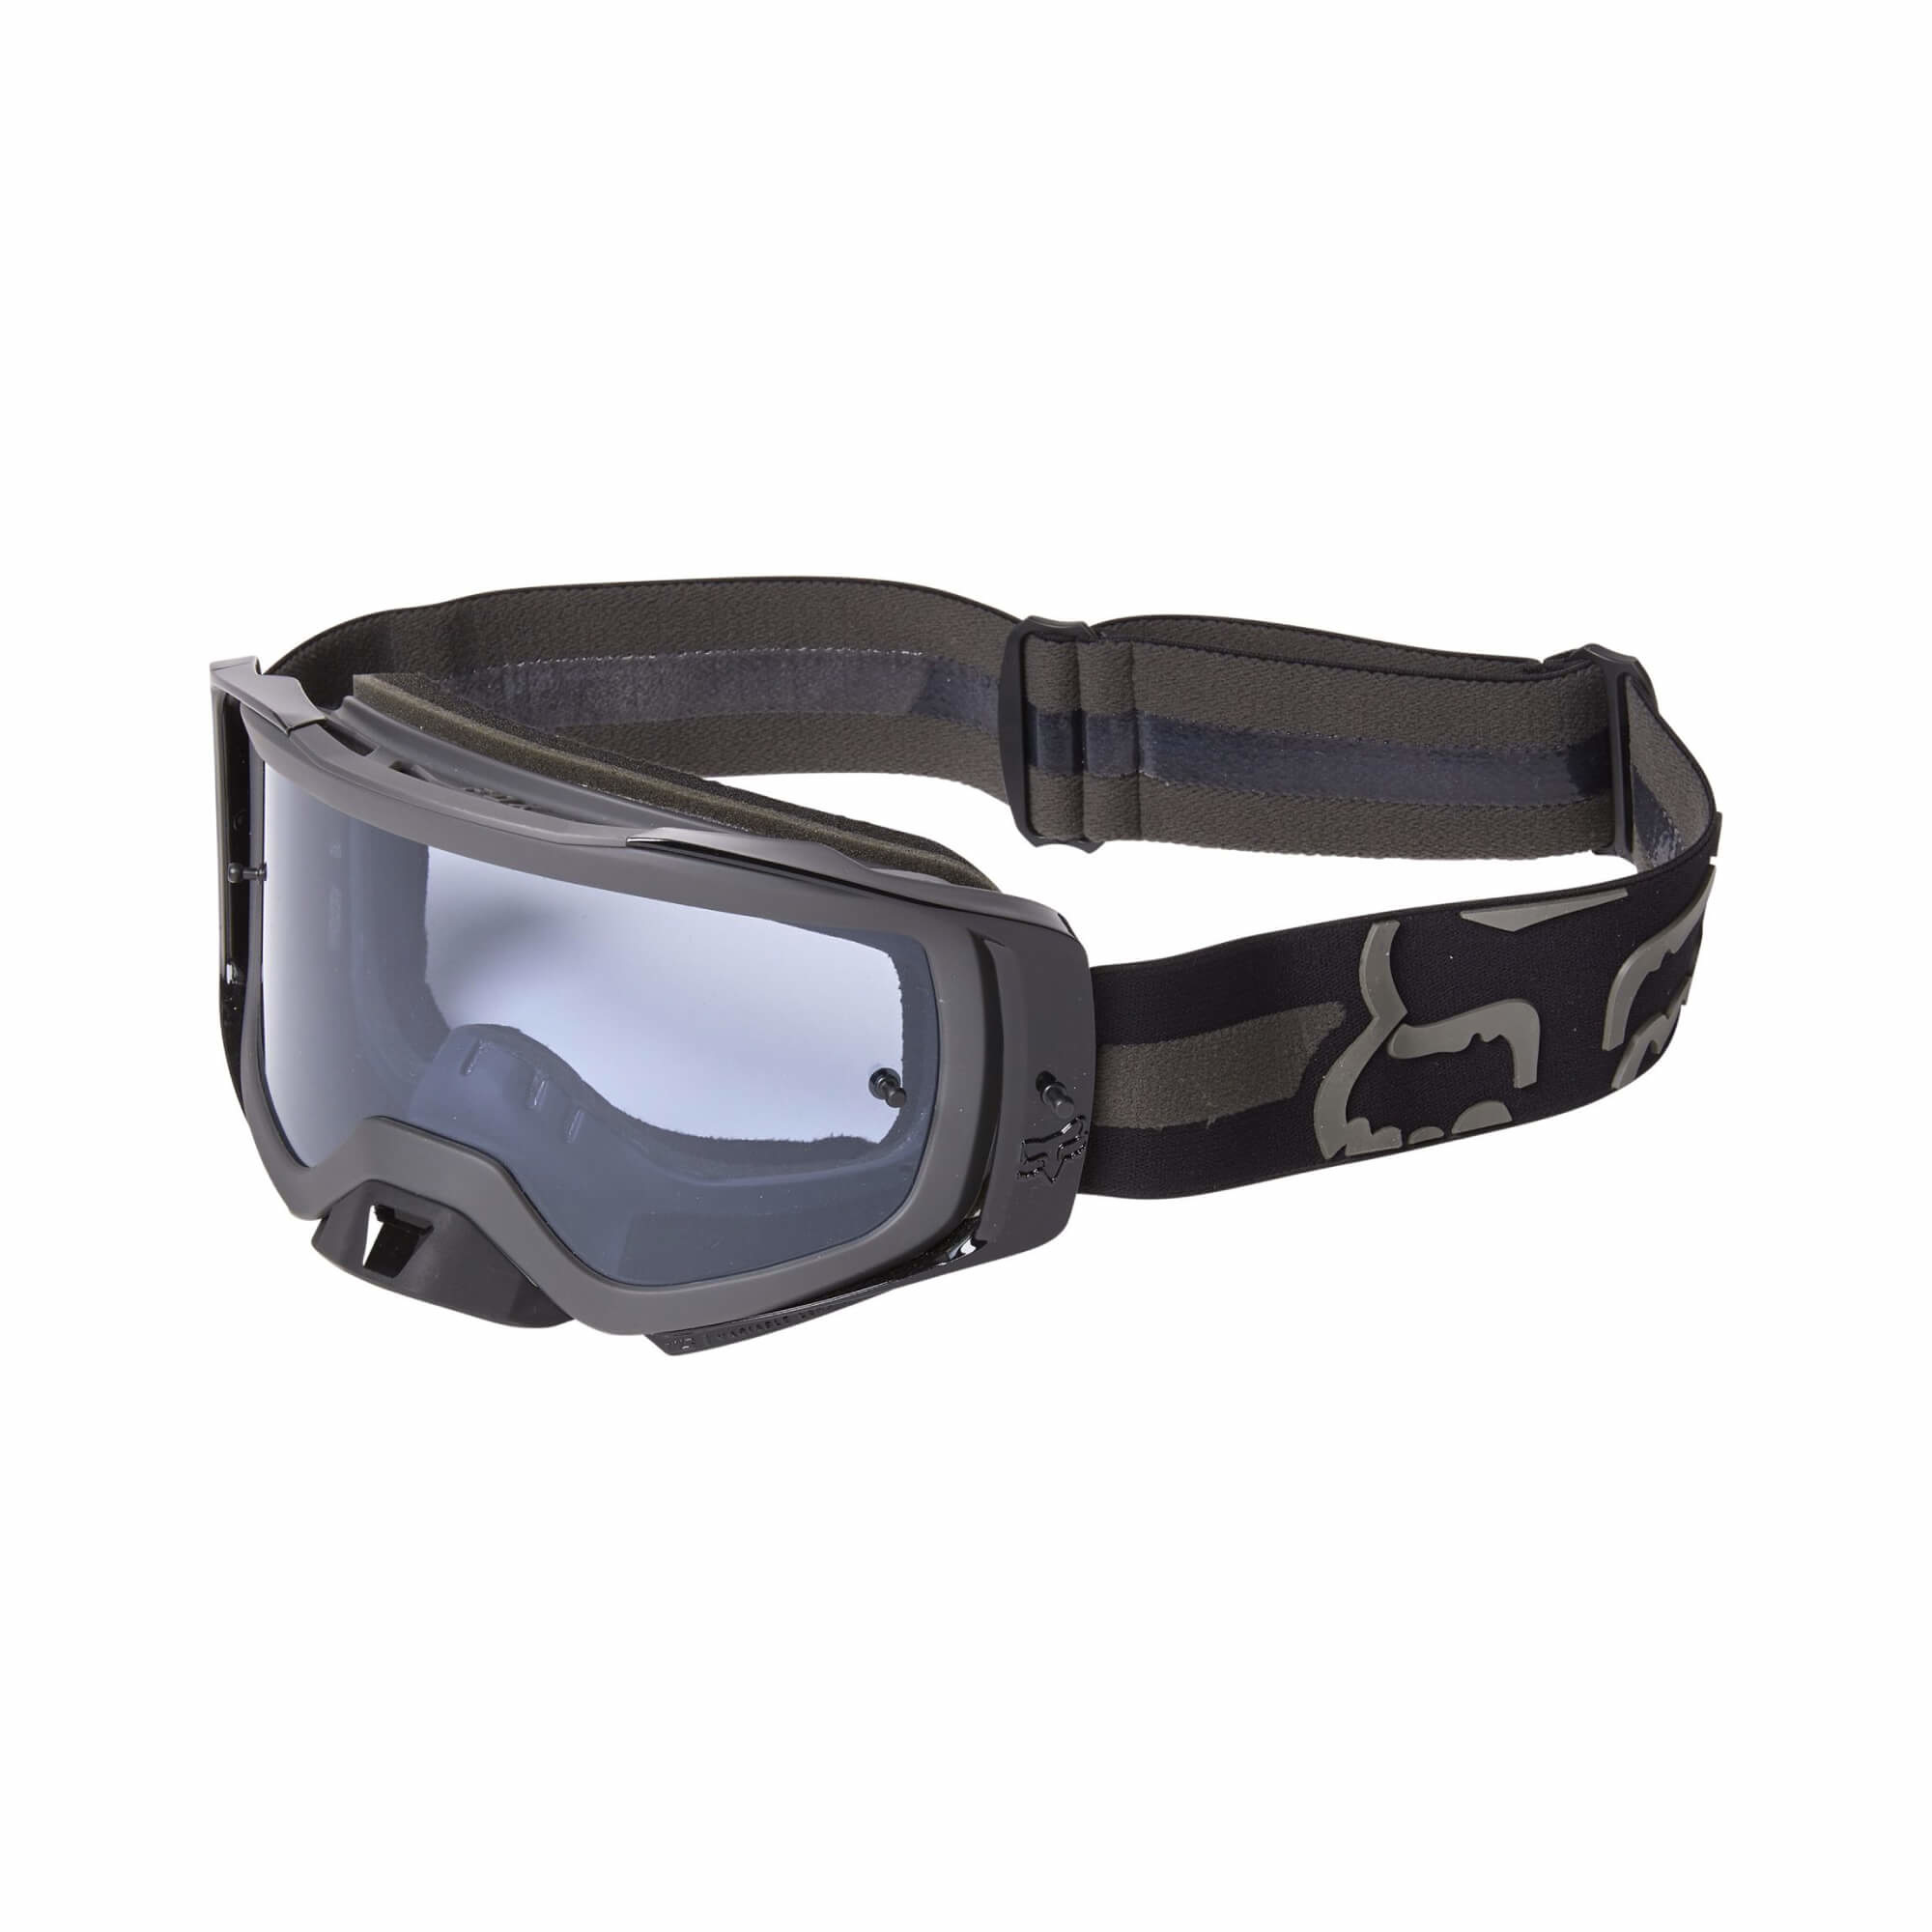 Airspace Merz Goggle 2021-2